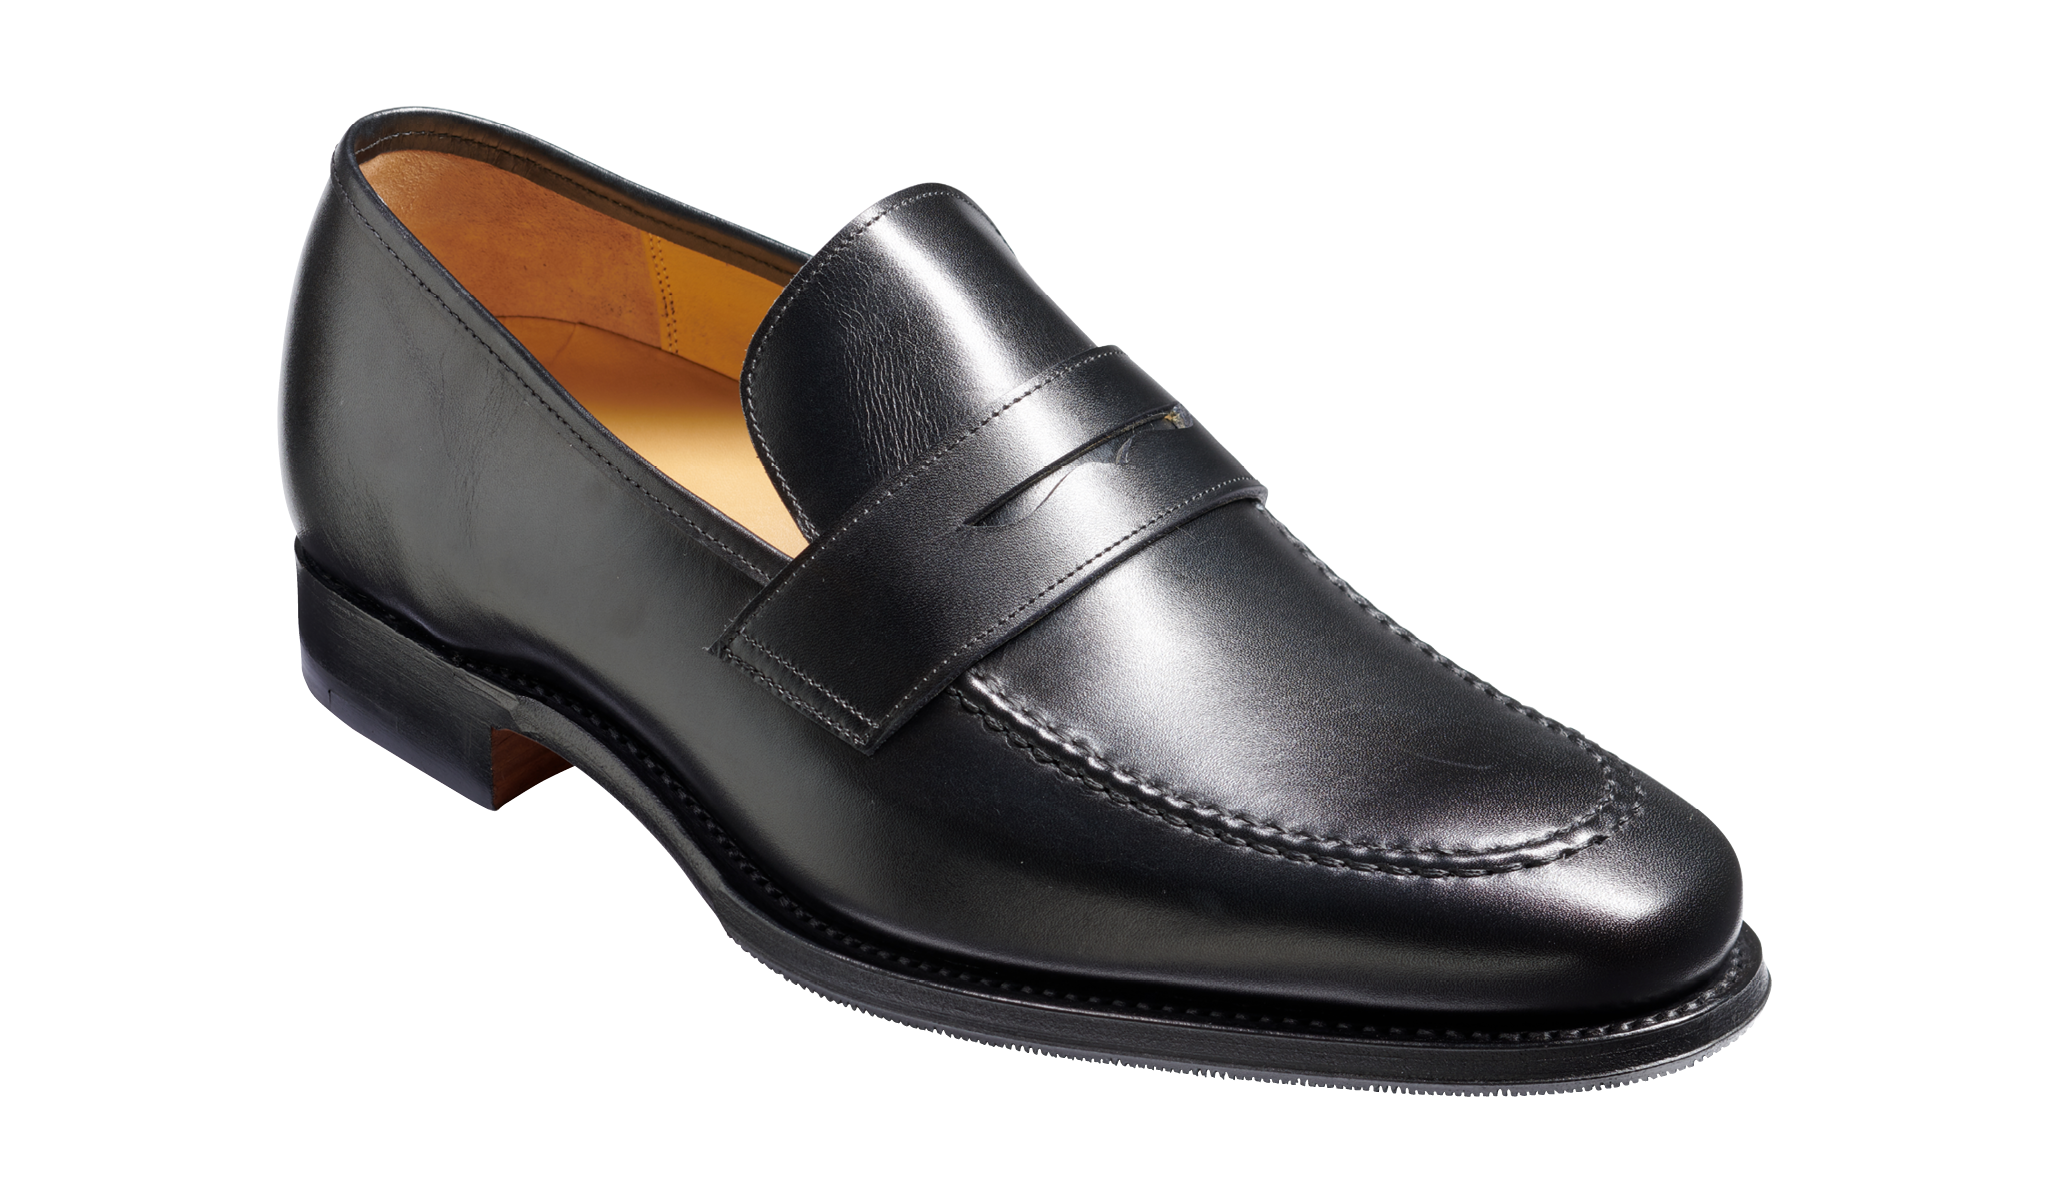 Gates - A men's black loafer by Barker Shoes